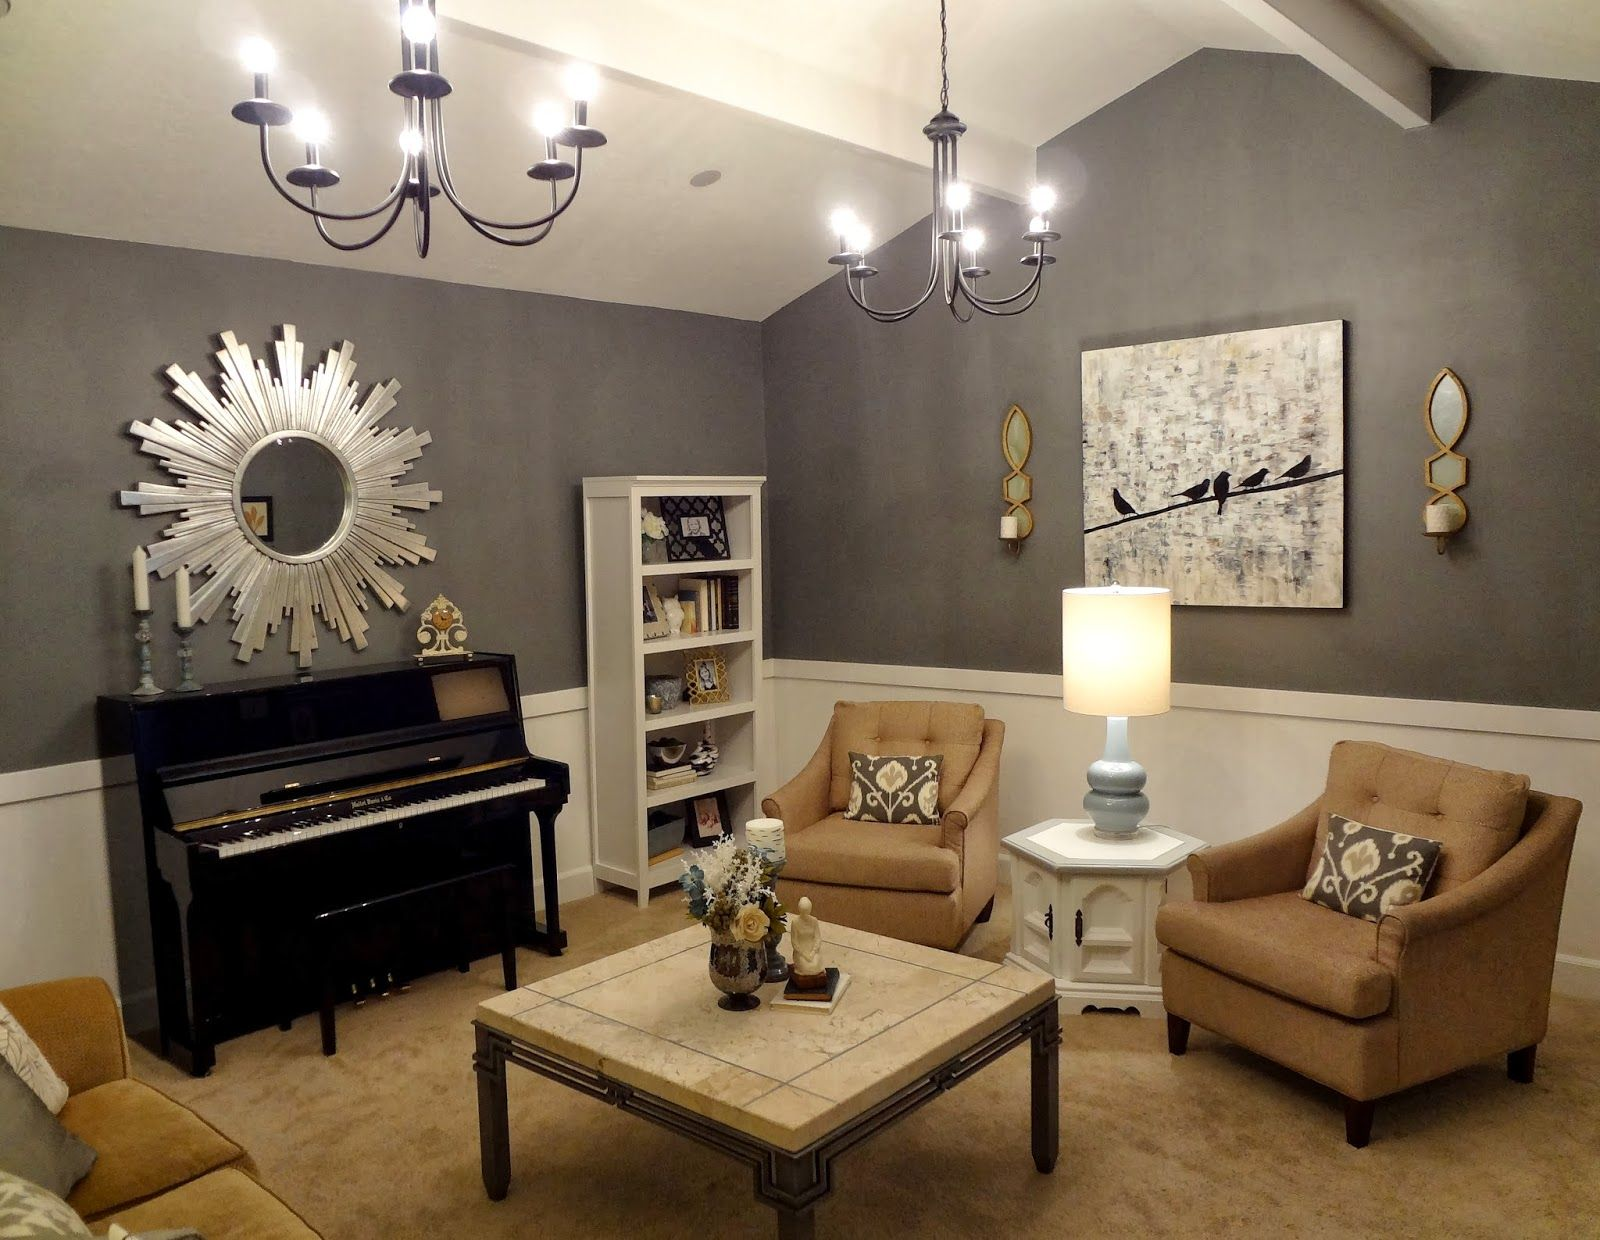 Living Room Design With Upright Piano Upright Piano Piano